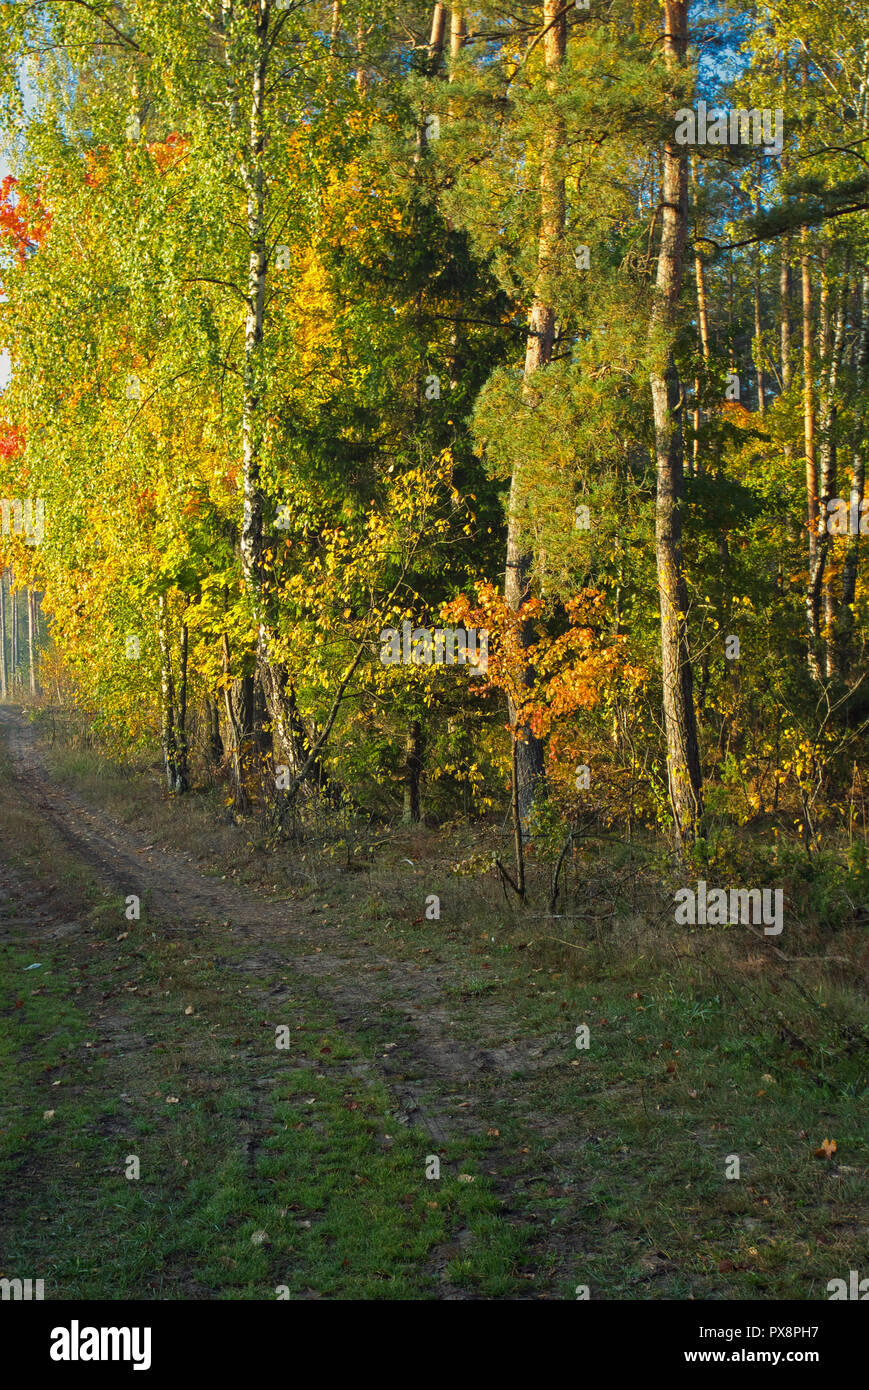 Forest path among trees with colorful leaves, early autumn morning.Vertical view for beautiful ilustration or postcards. - Stock Image